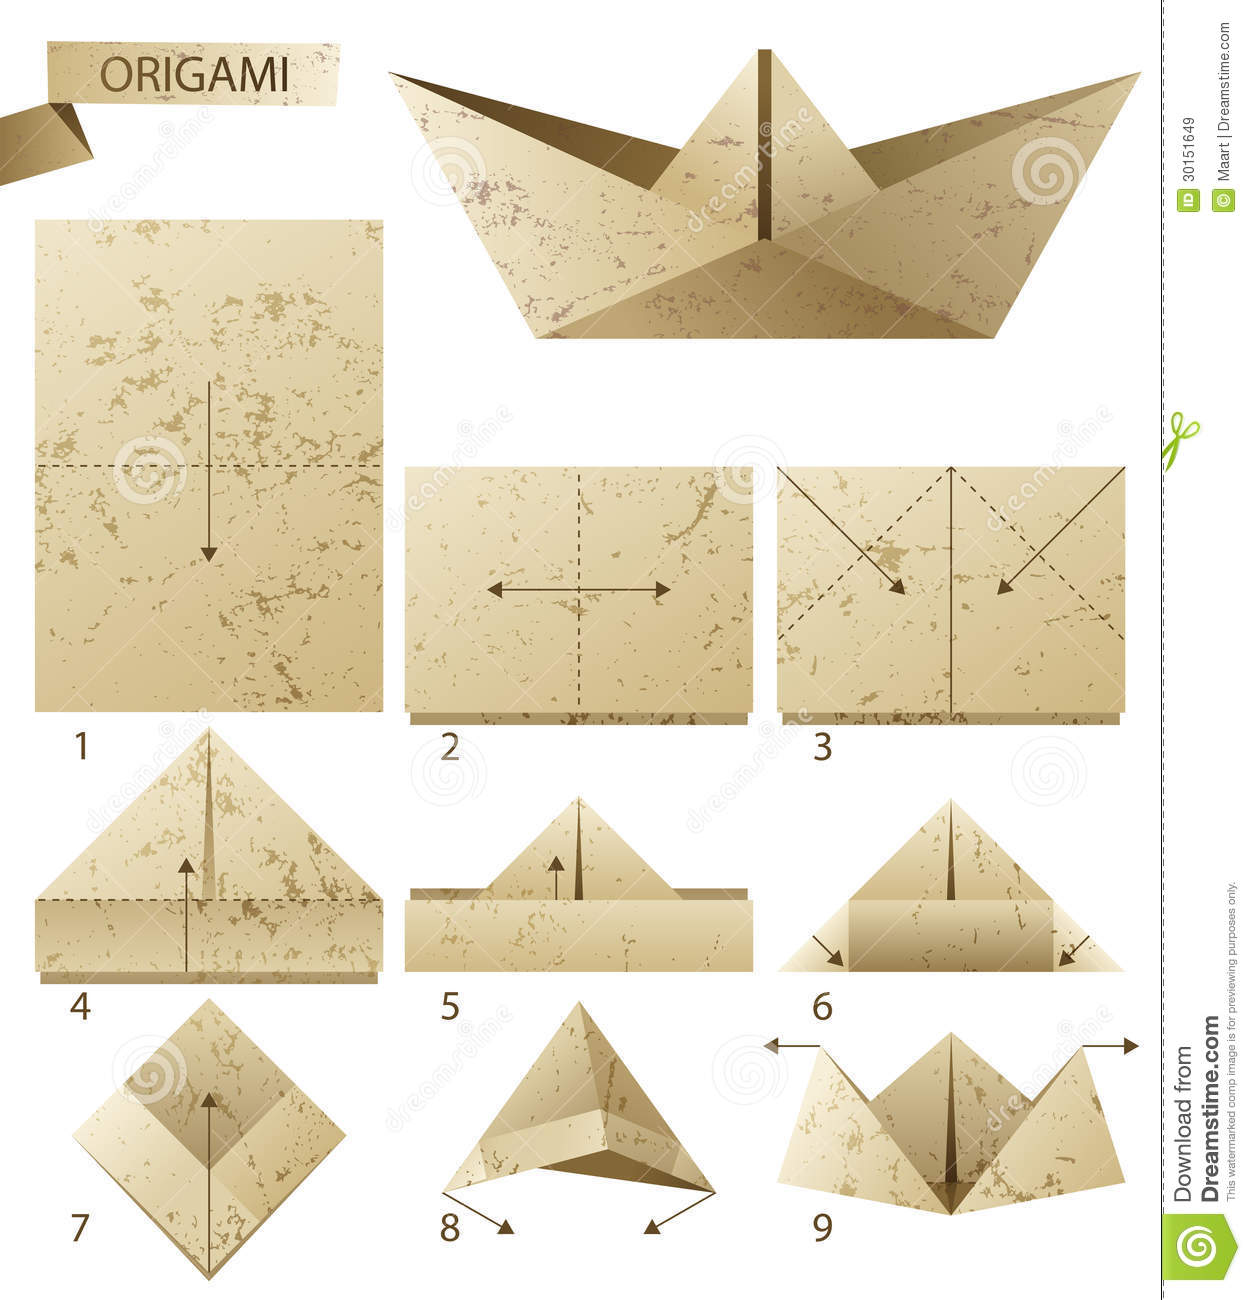 Origami Images Free Download